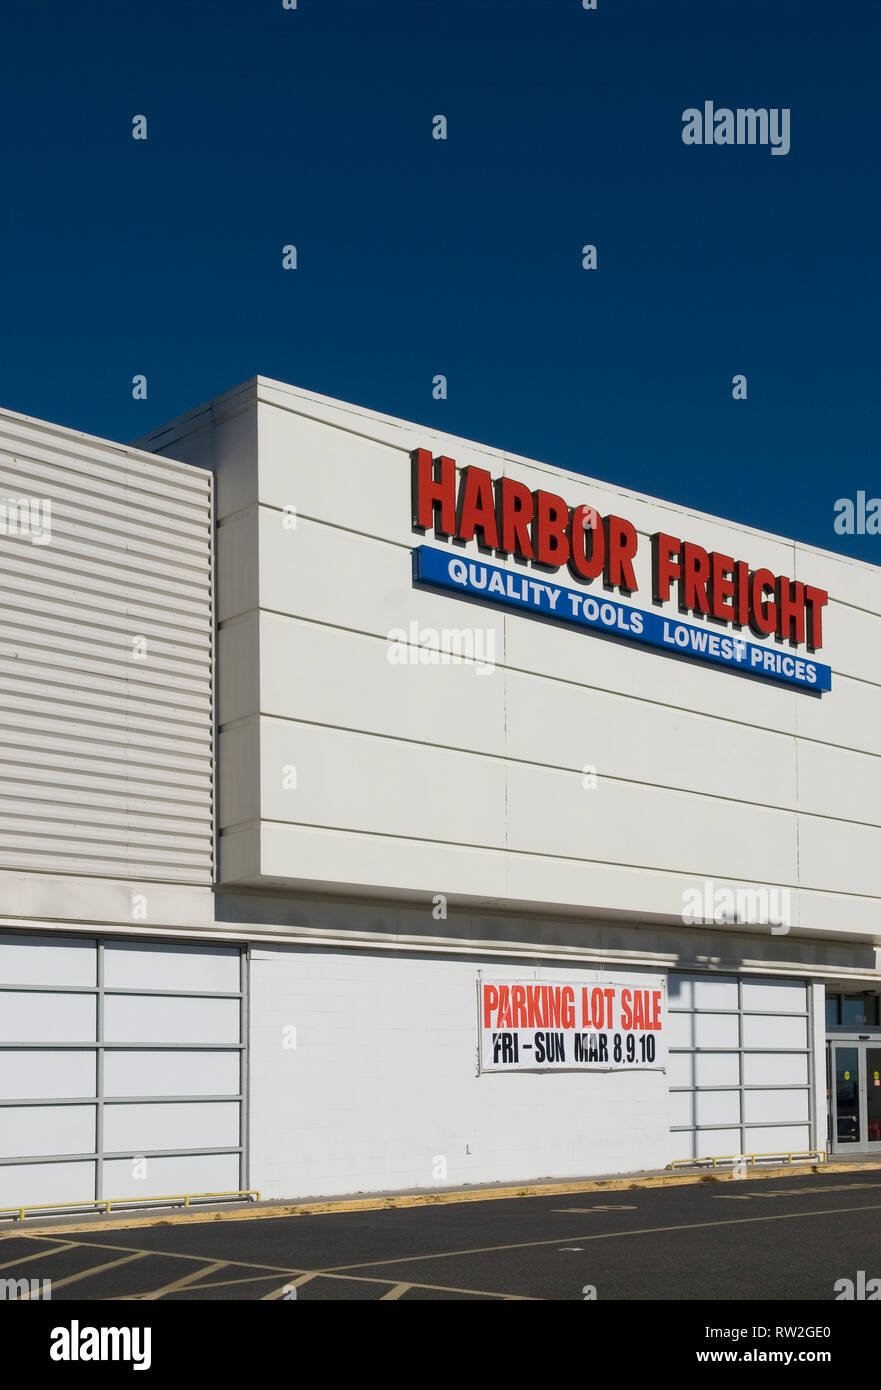 Harbor Freight Tools Stock Photos & Harbor Freight Tools